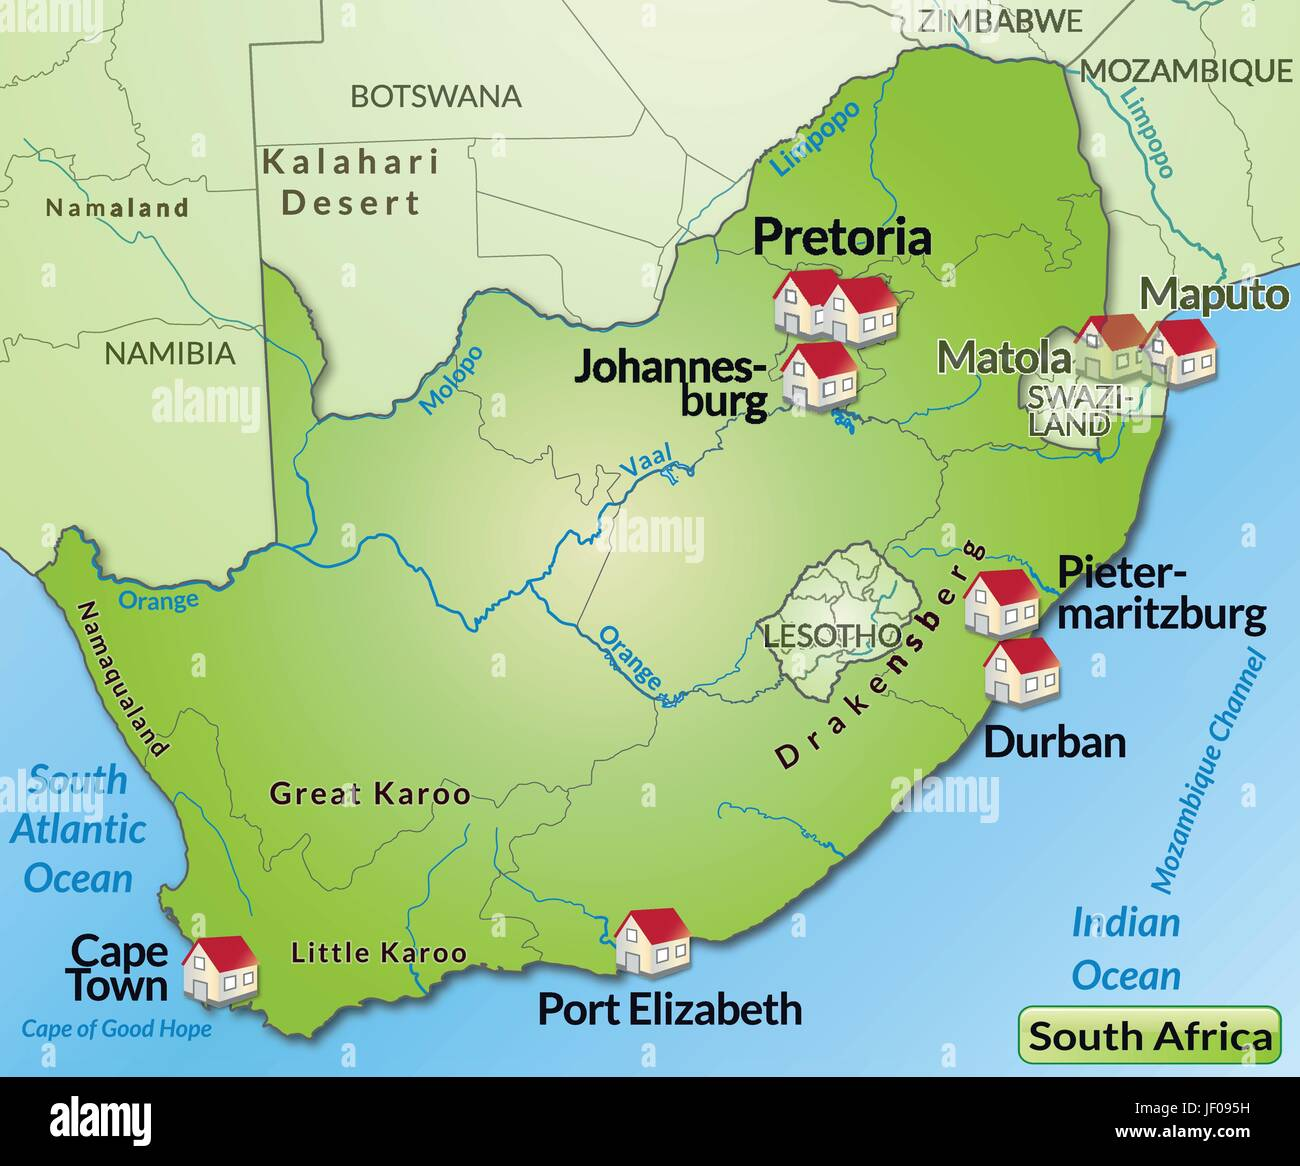 South Africa Border Card Synopsis Borders Atlas Map Of The